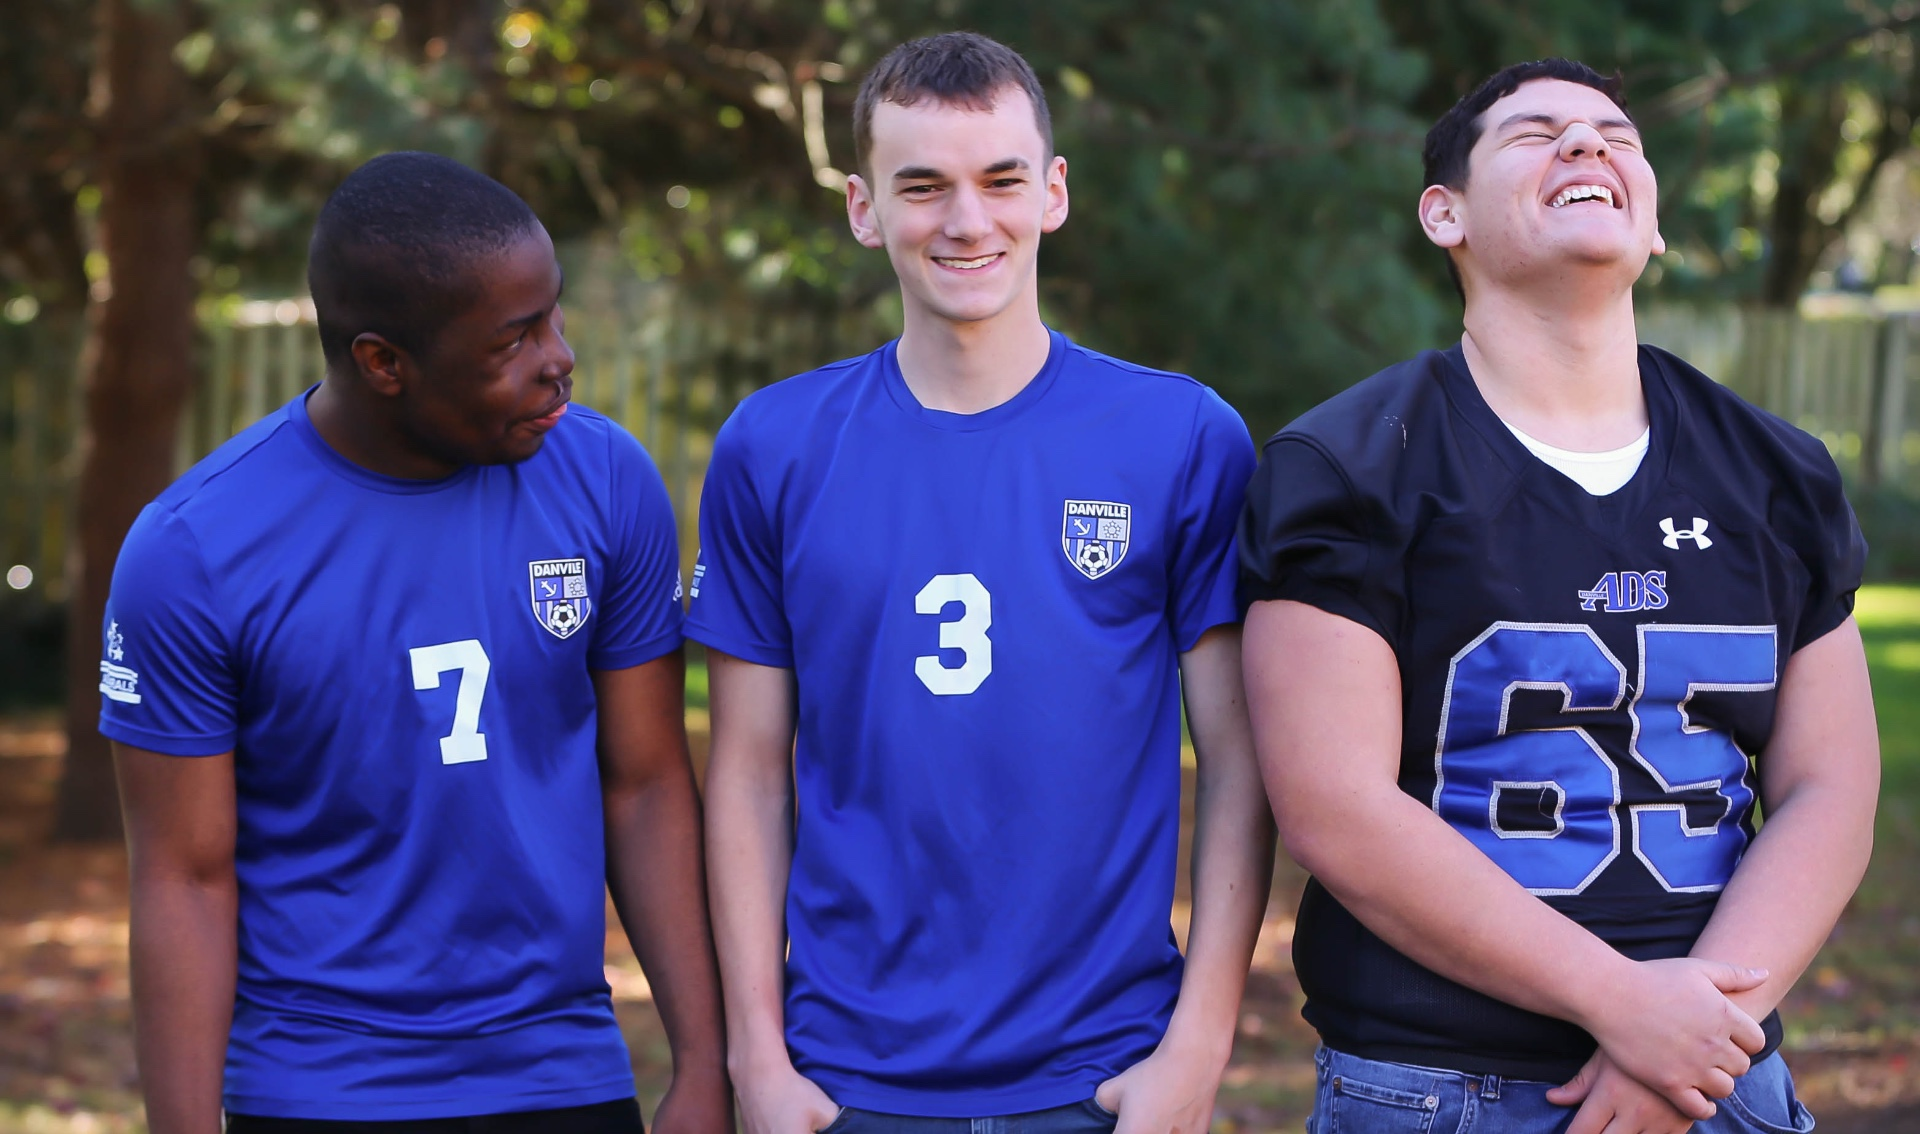 Remilson stands and laughs alongside his brother Zach, a teenage white boy with short black hair, and his brother Alex, a teenage white boy with short black hair. Zach is wearing a Danville soccer jersey similar to Remilson while Alex is wearing a navy blue football jersey.